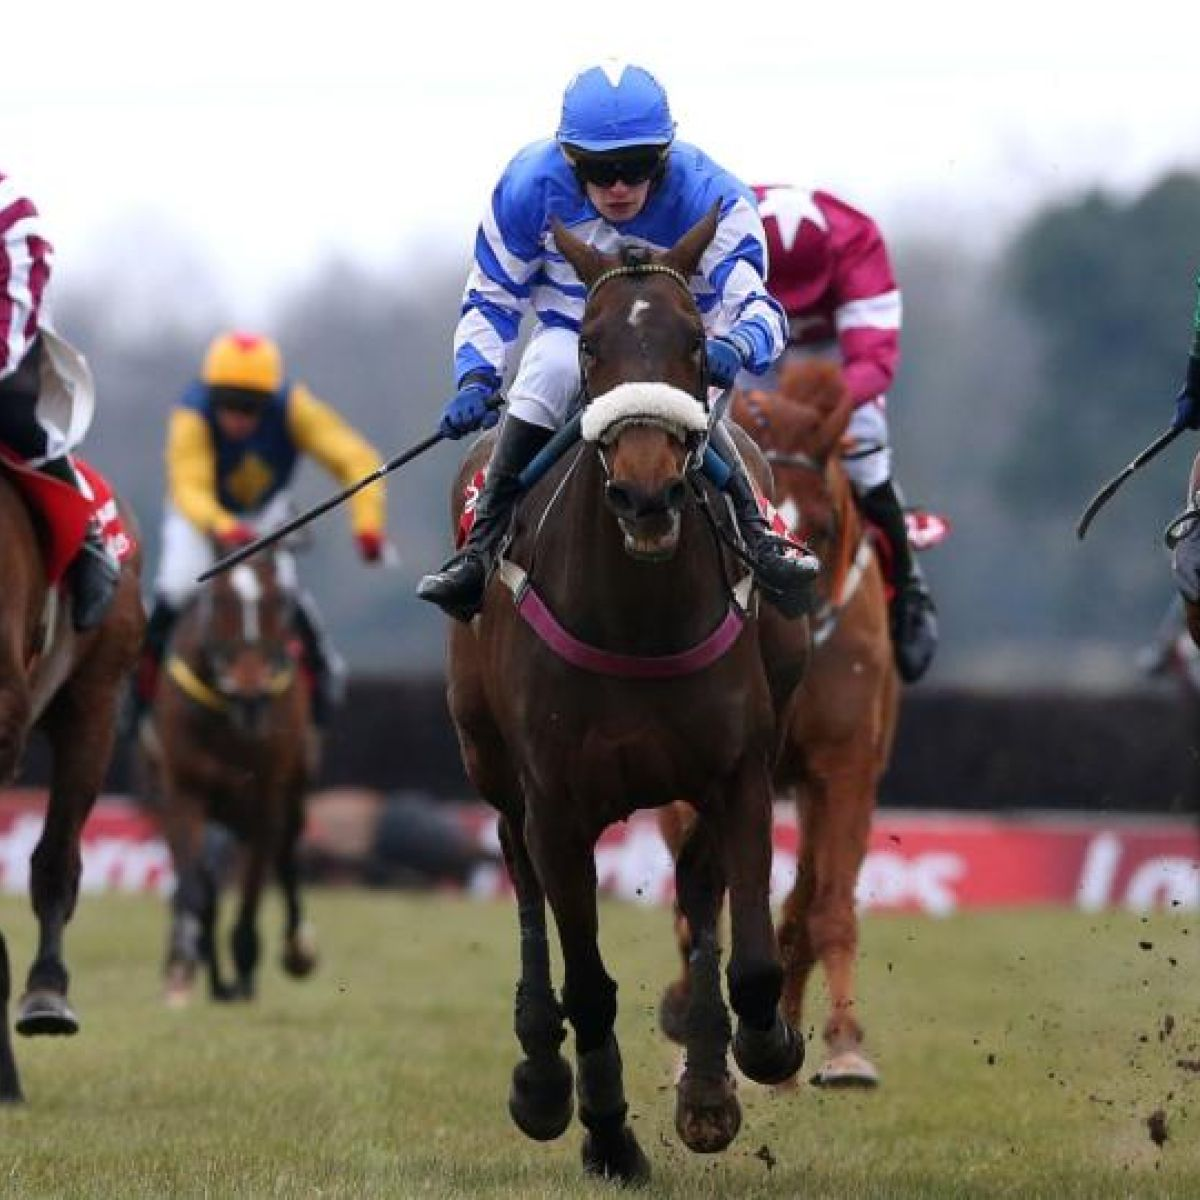 Topham trophy betting on sports farming bitcoins